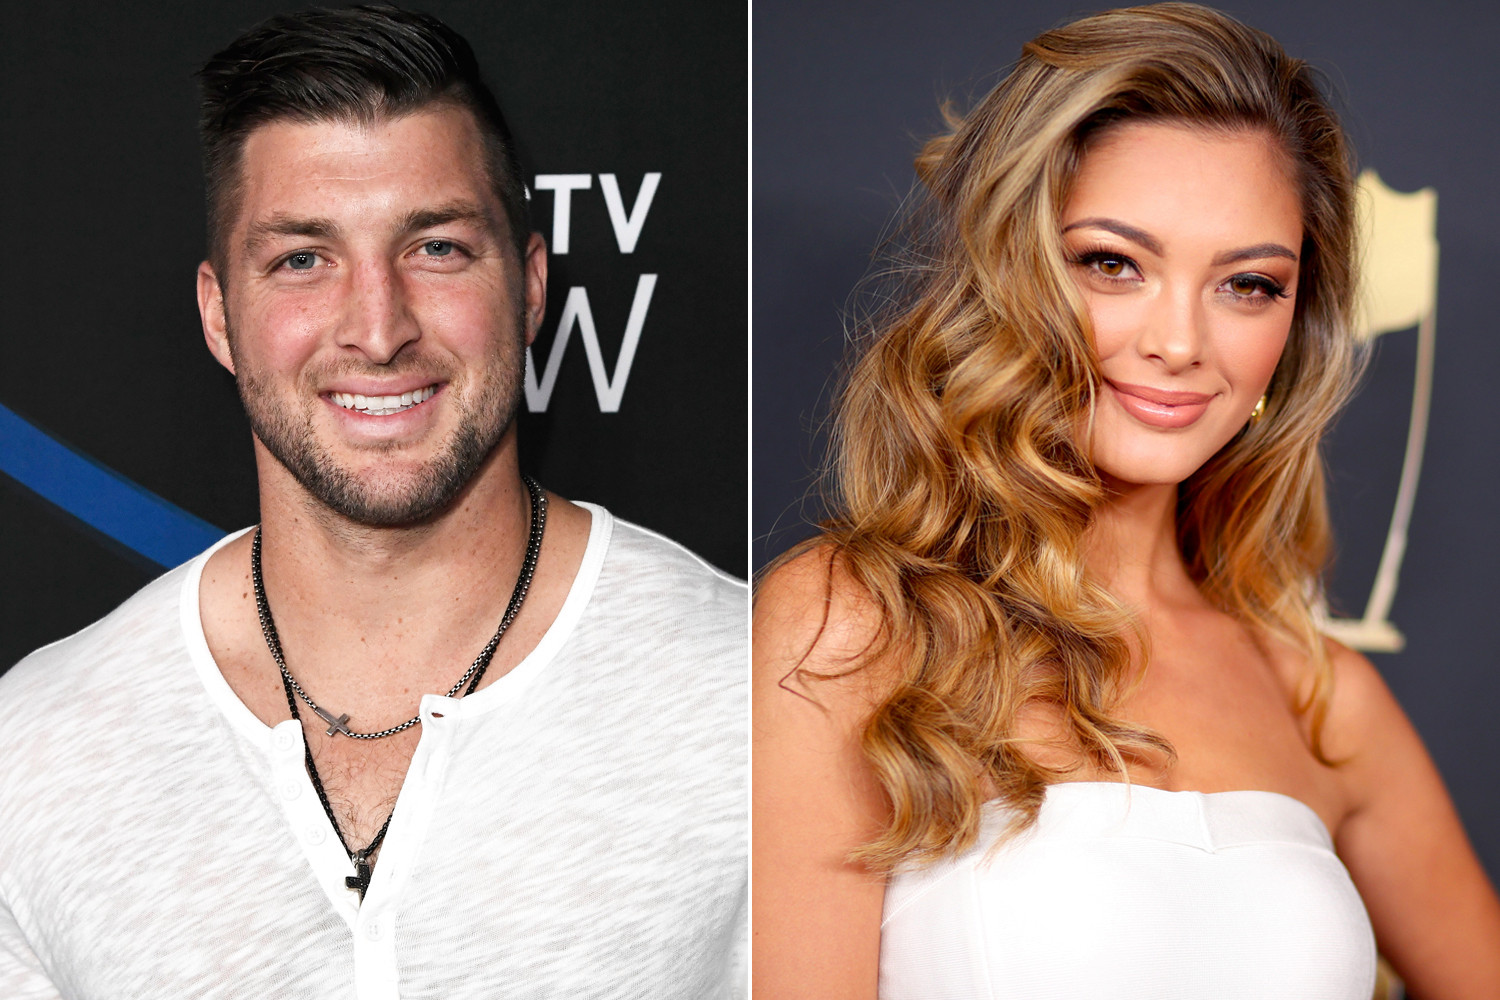 Sorry ladies - Tim Tebow is officially off the market